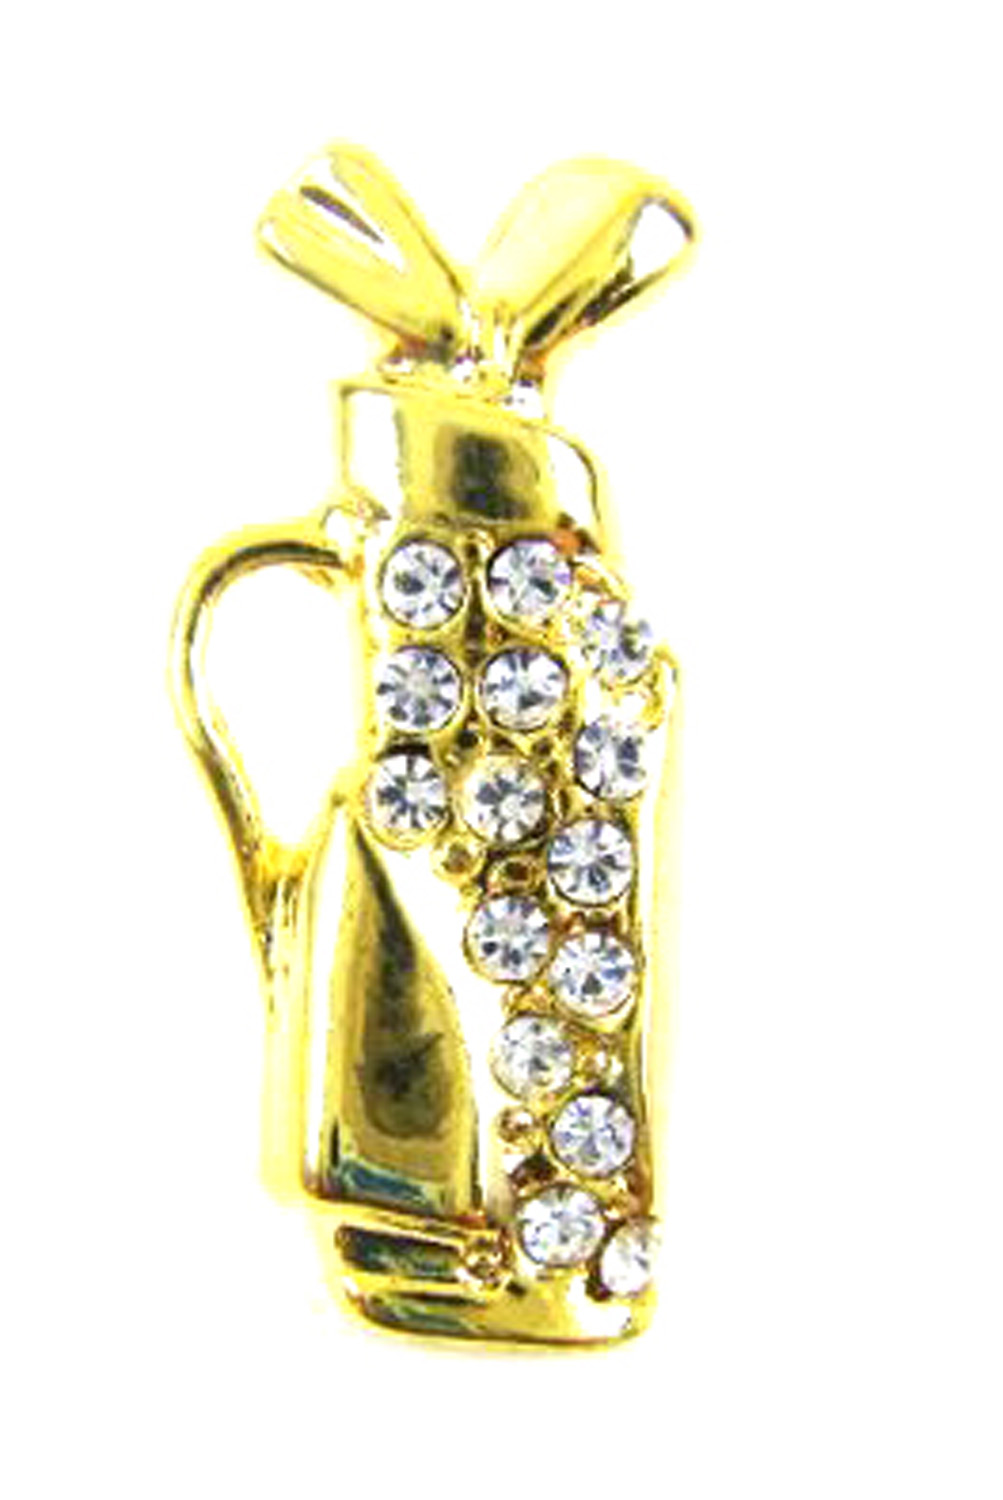 Gold Tone Golf Club Brooch Pin with Rhinestones by